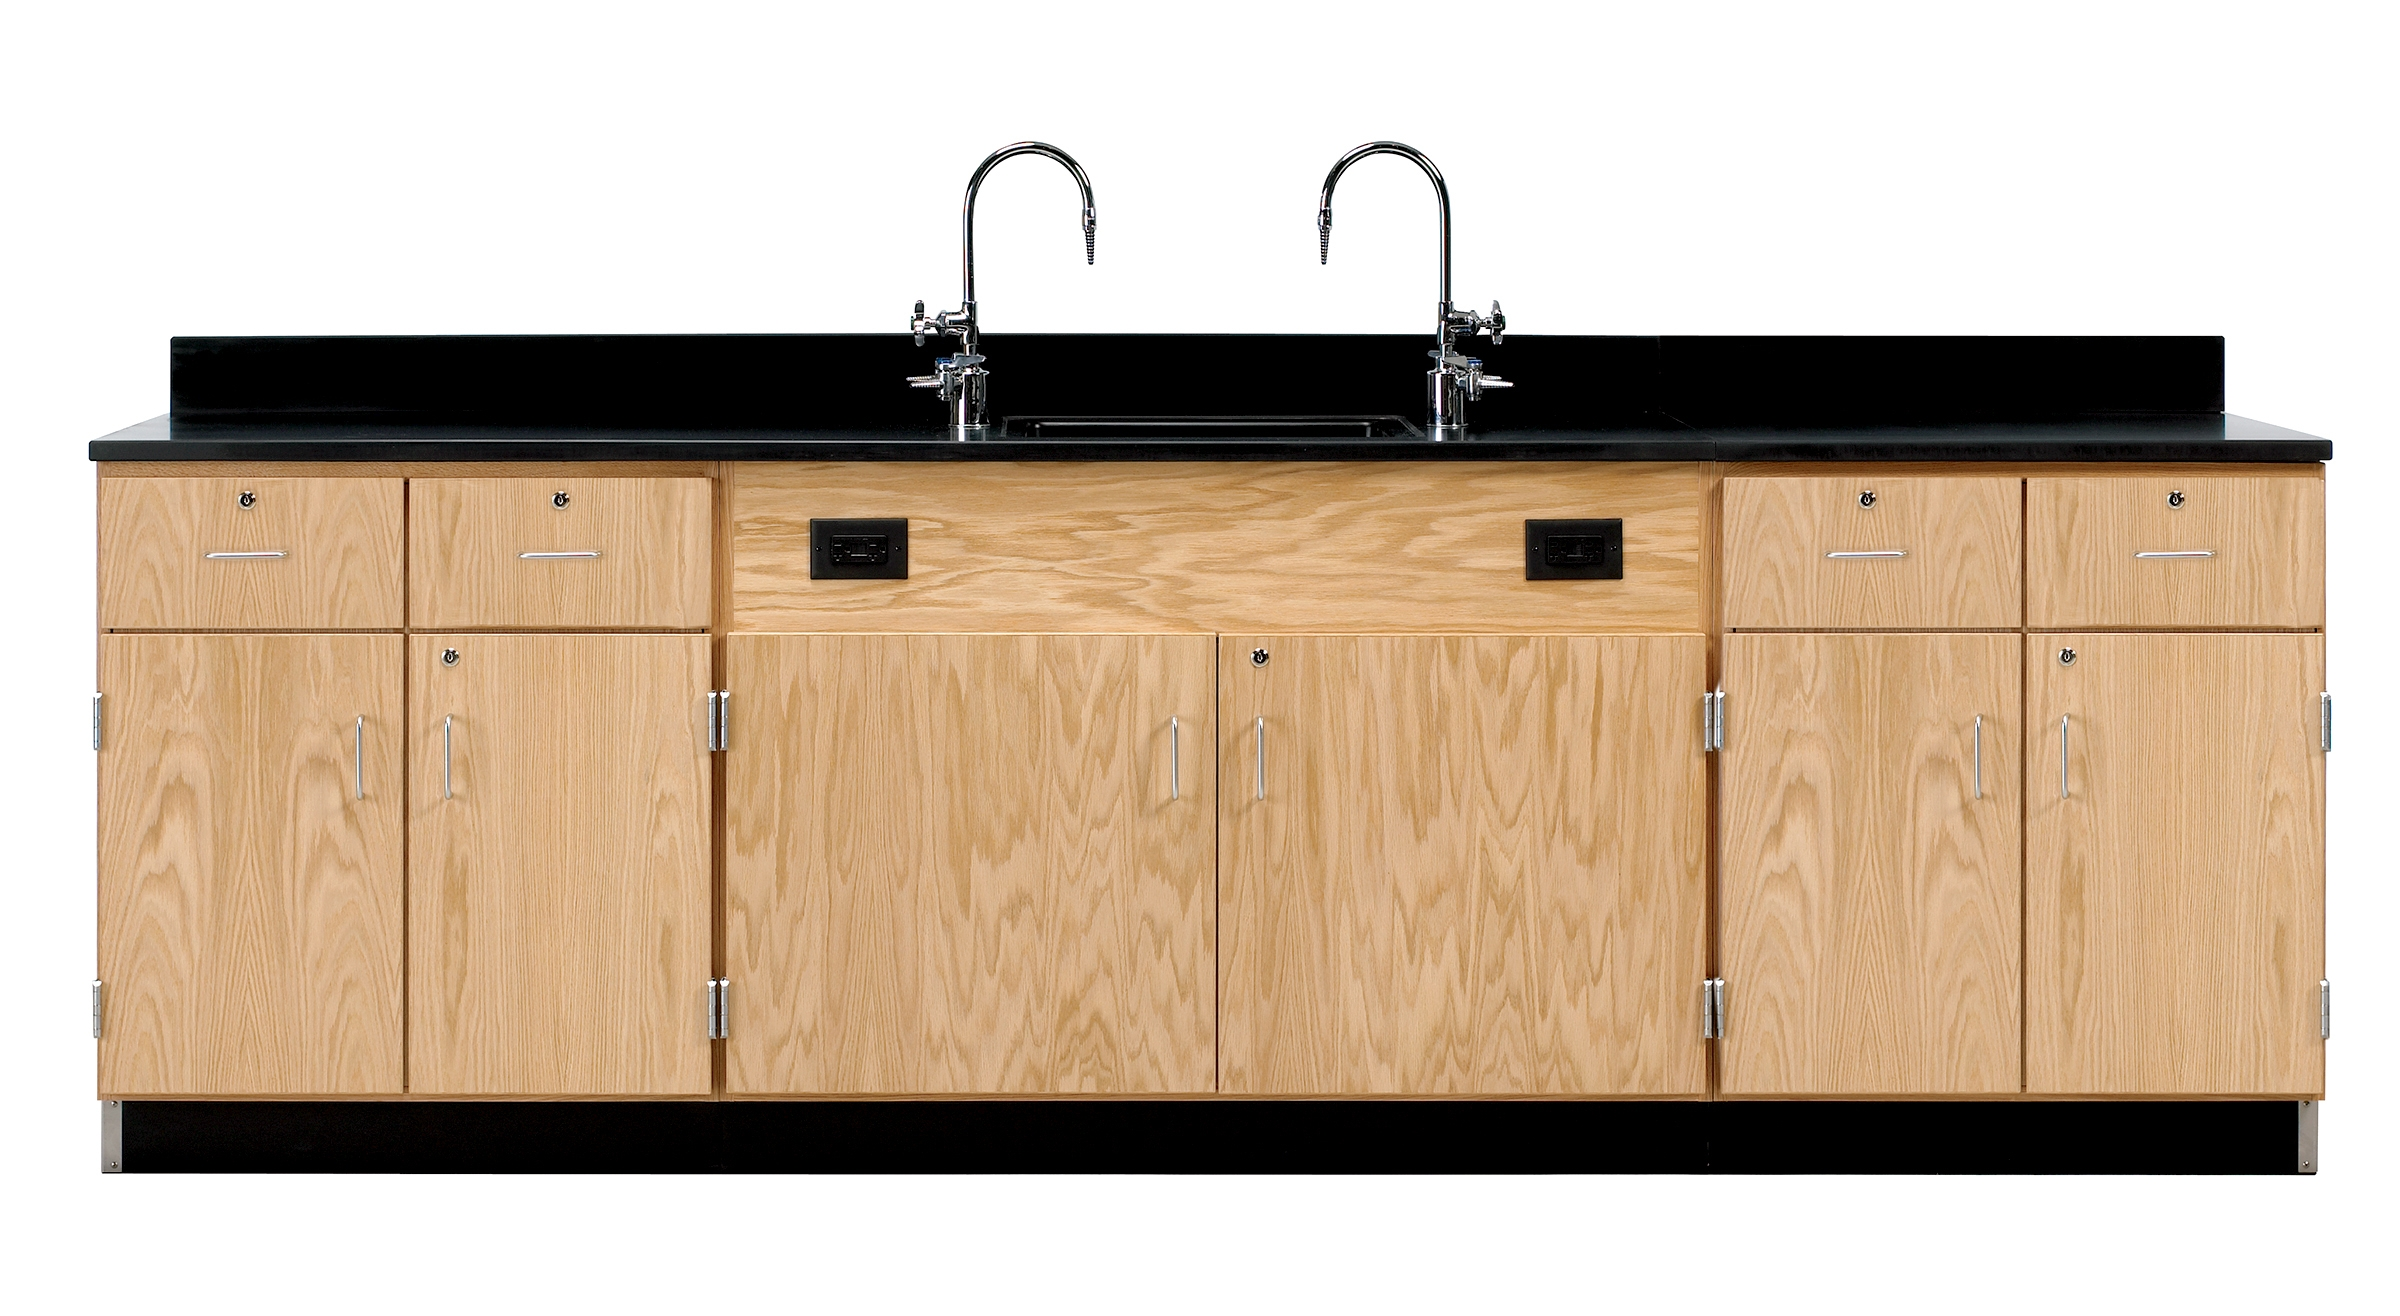 Diversified Woodcrafts Wall Service Bench with Cabinets & Drawers - Phenolic Top